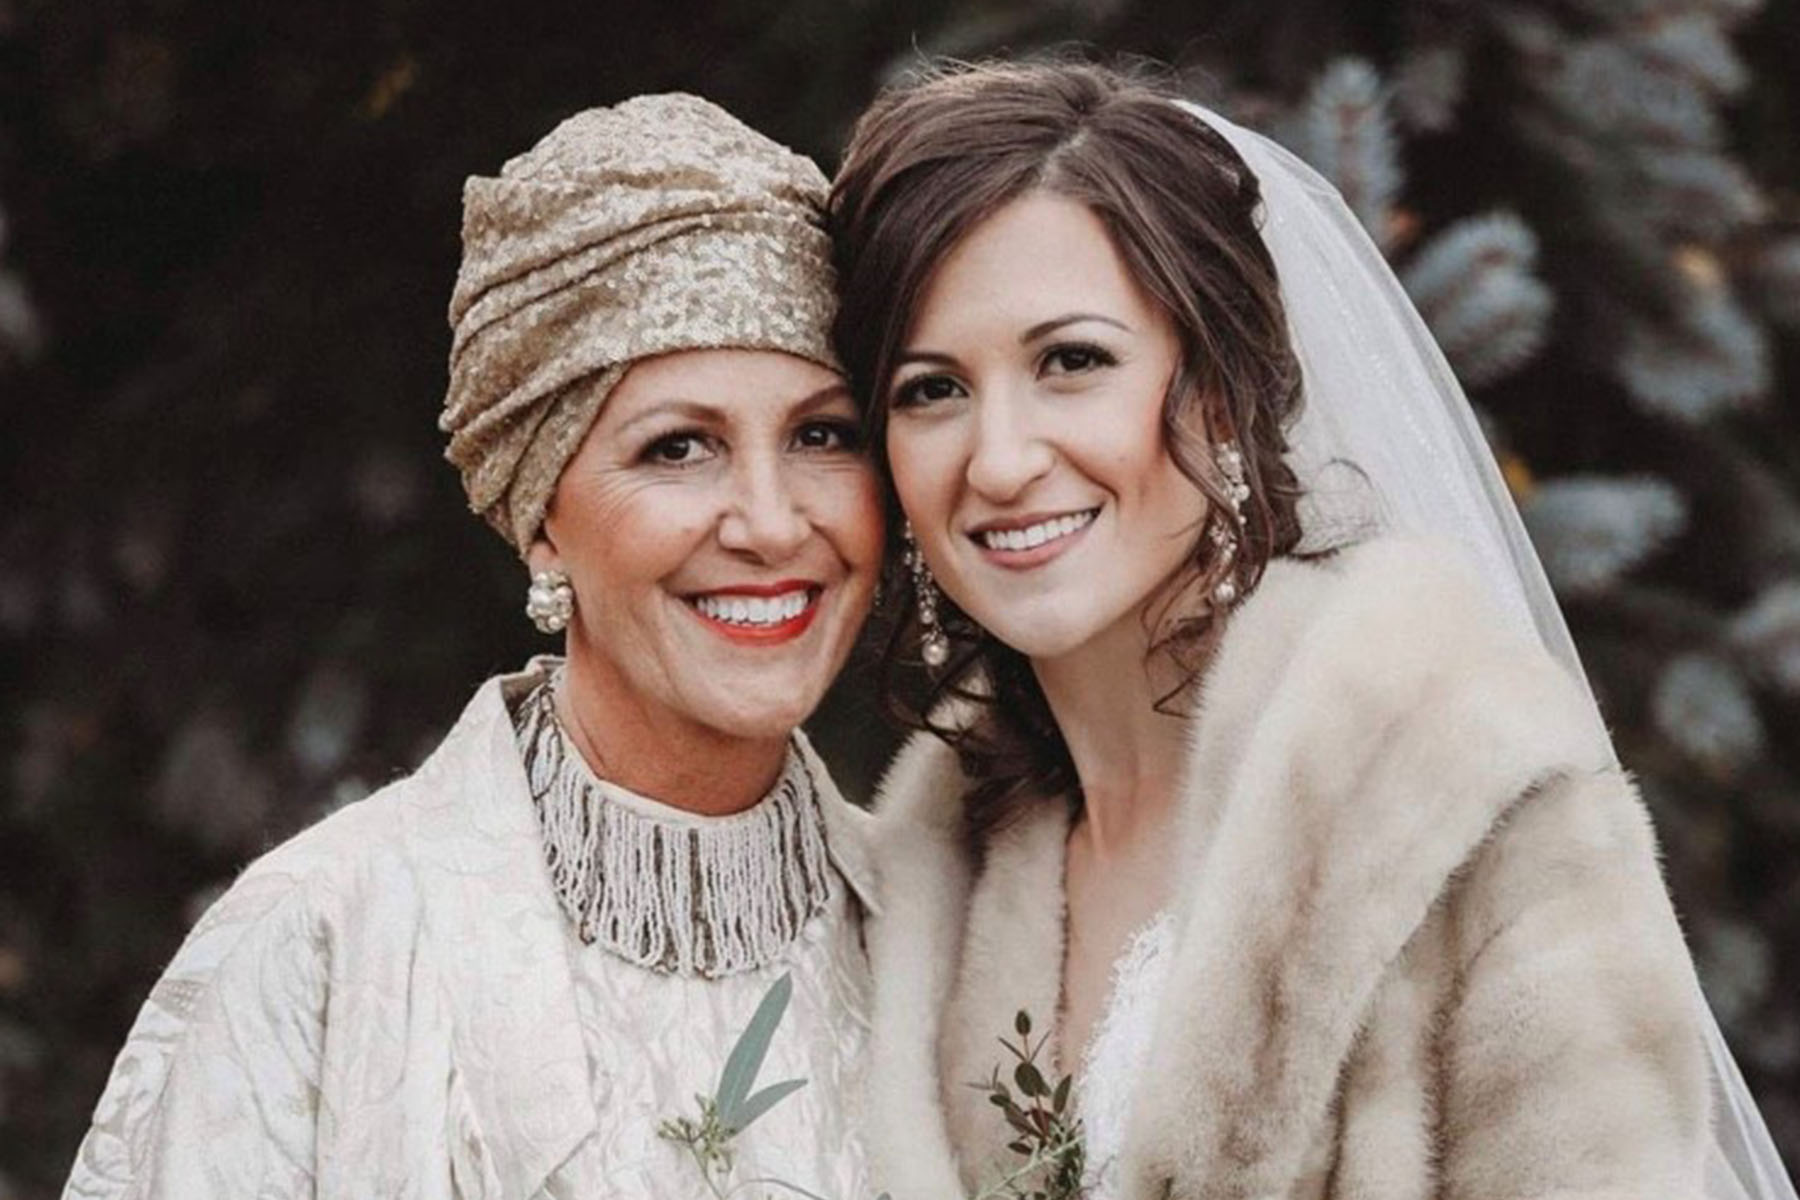 A photo of Tracey with her daughter on her wedding day